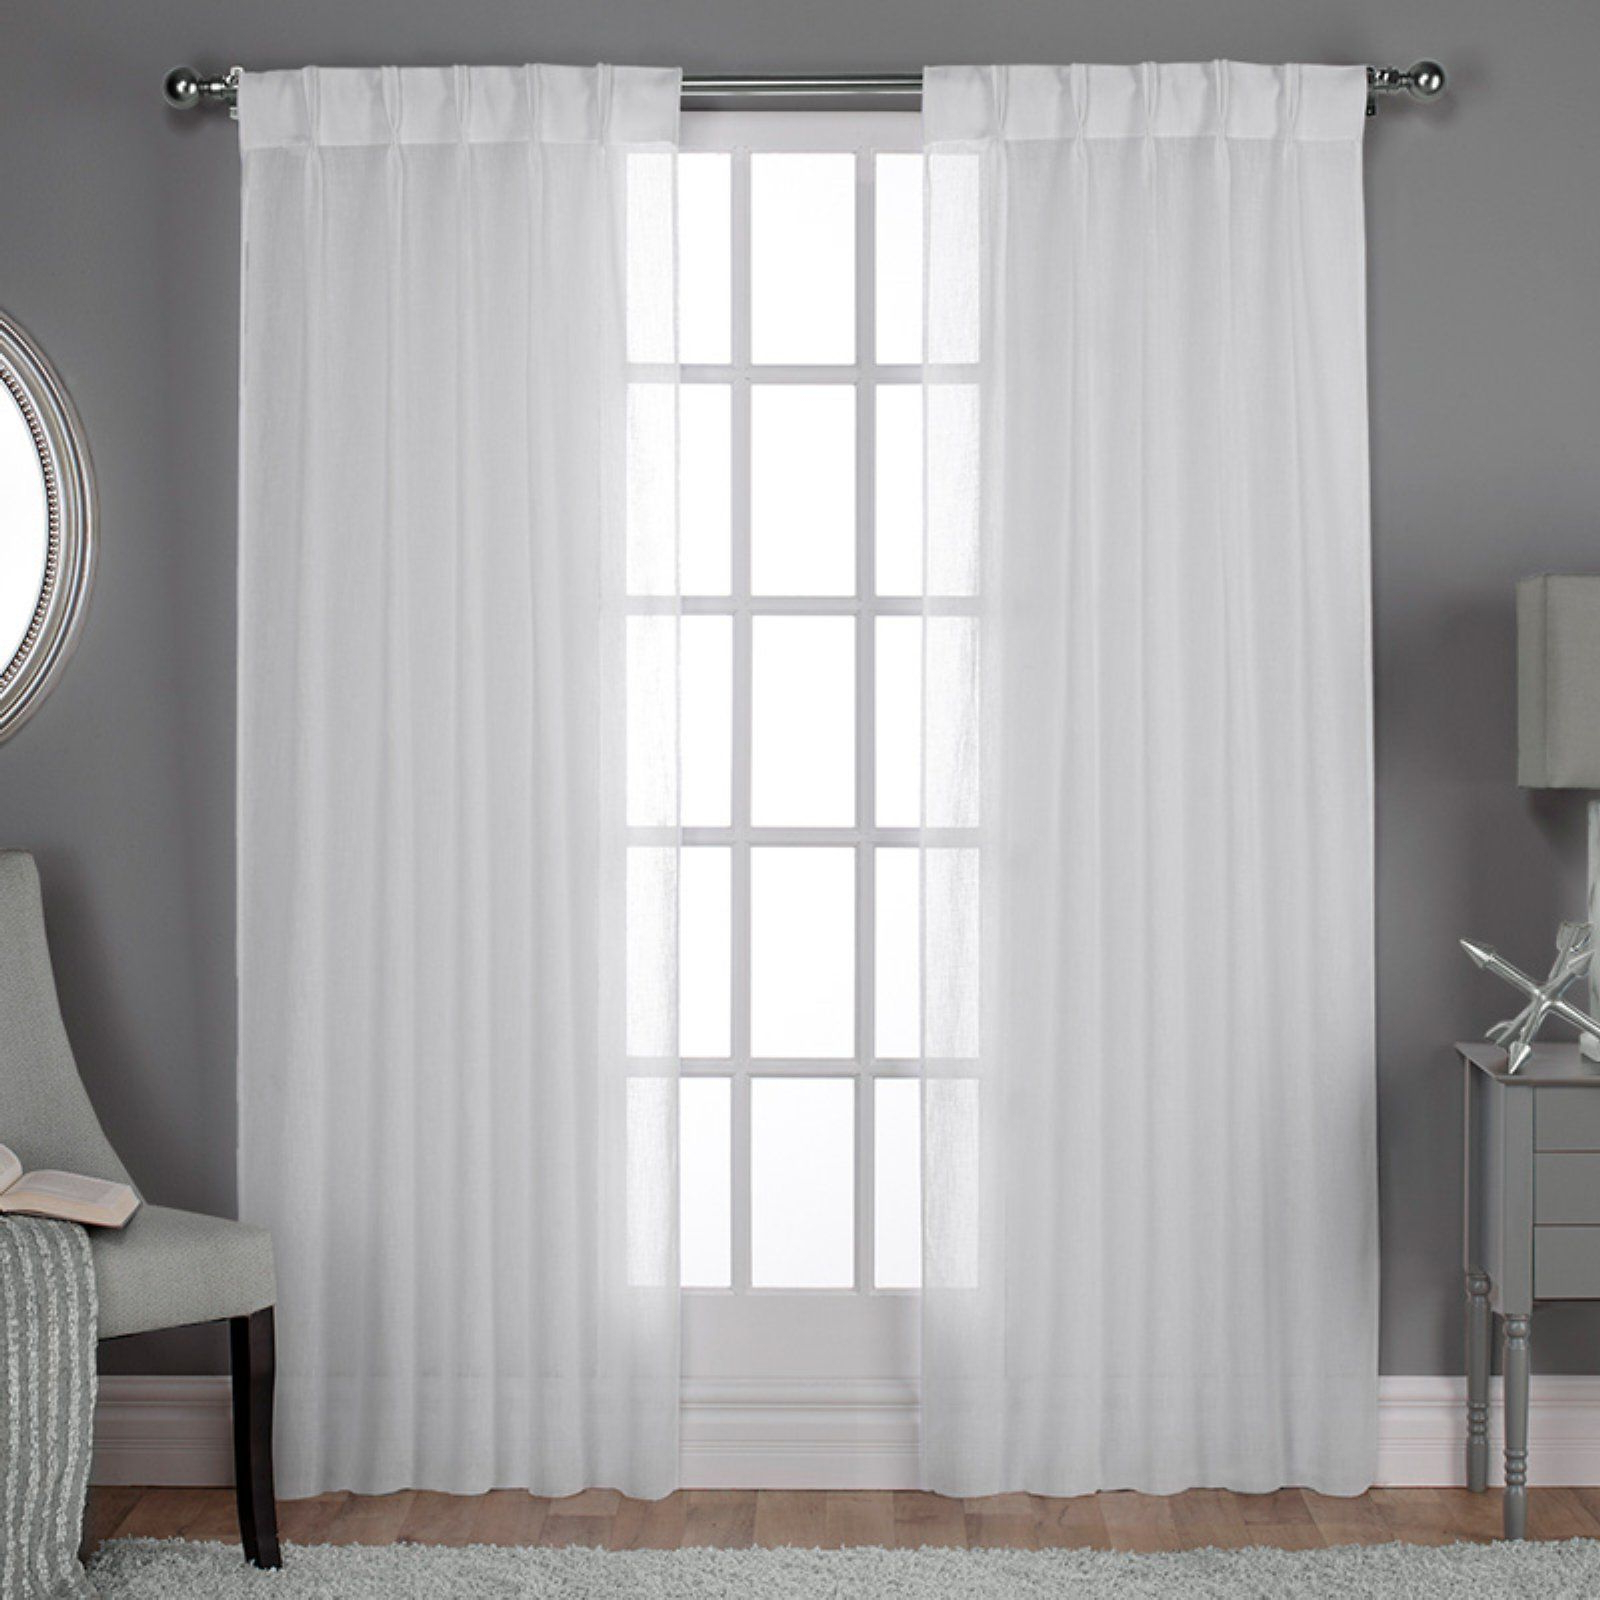 Most Recent Lydia Ruffle Window Curtain Panel Pairs Pertaining To Exclusive Home Belgian Pleated Jacquard Sheer Window Curtain (View 14 of 20)